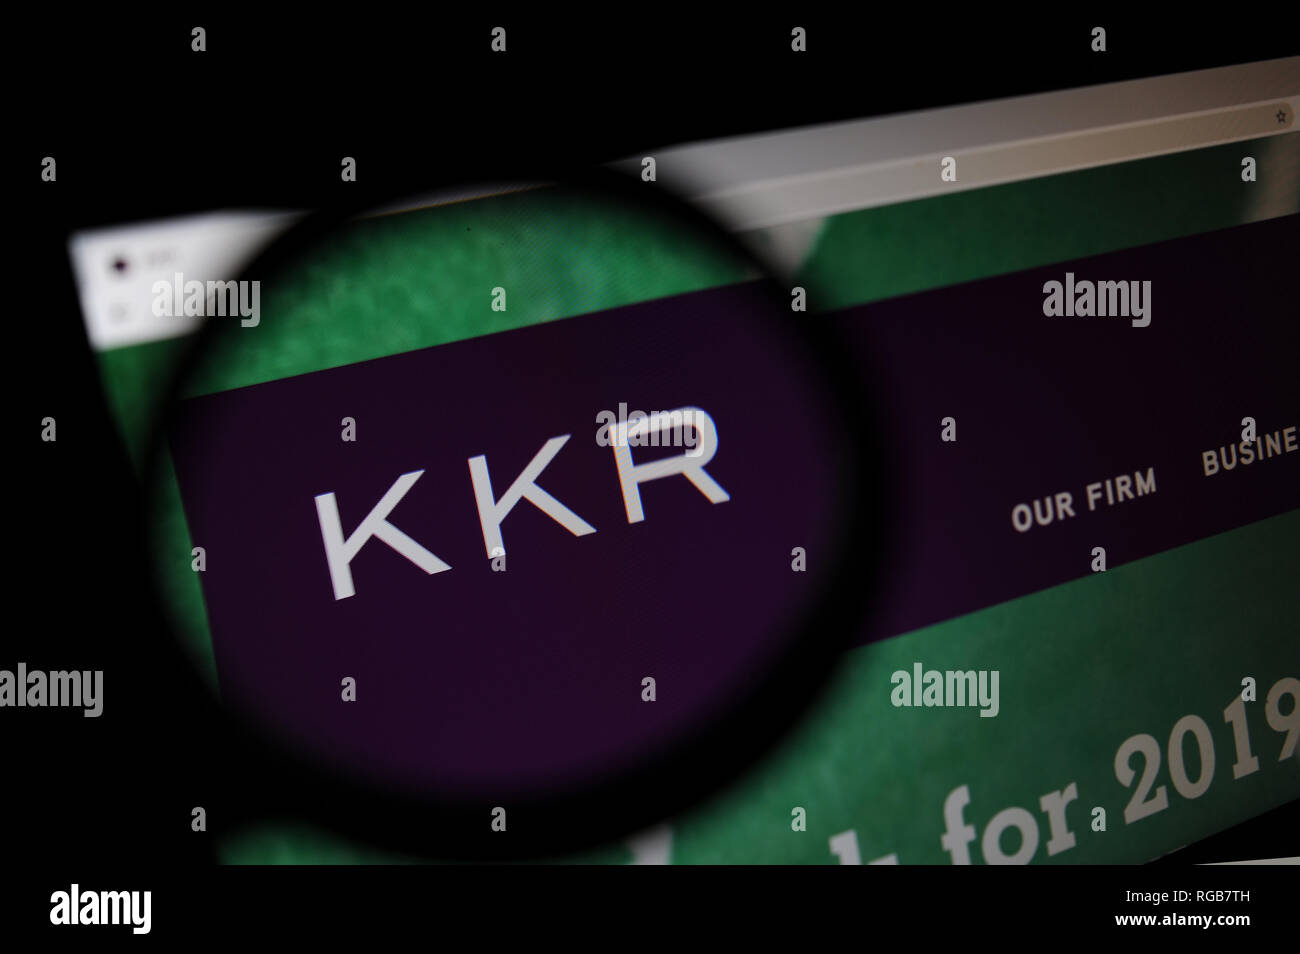 The private equity firm KKR & Co. Inc website seen through a magnifying glass - Stock Image